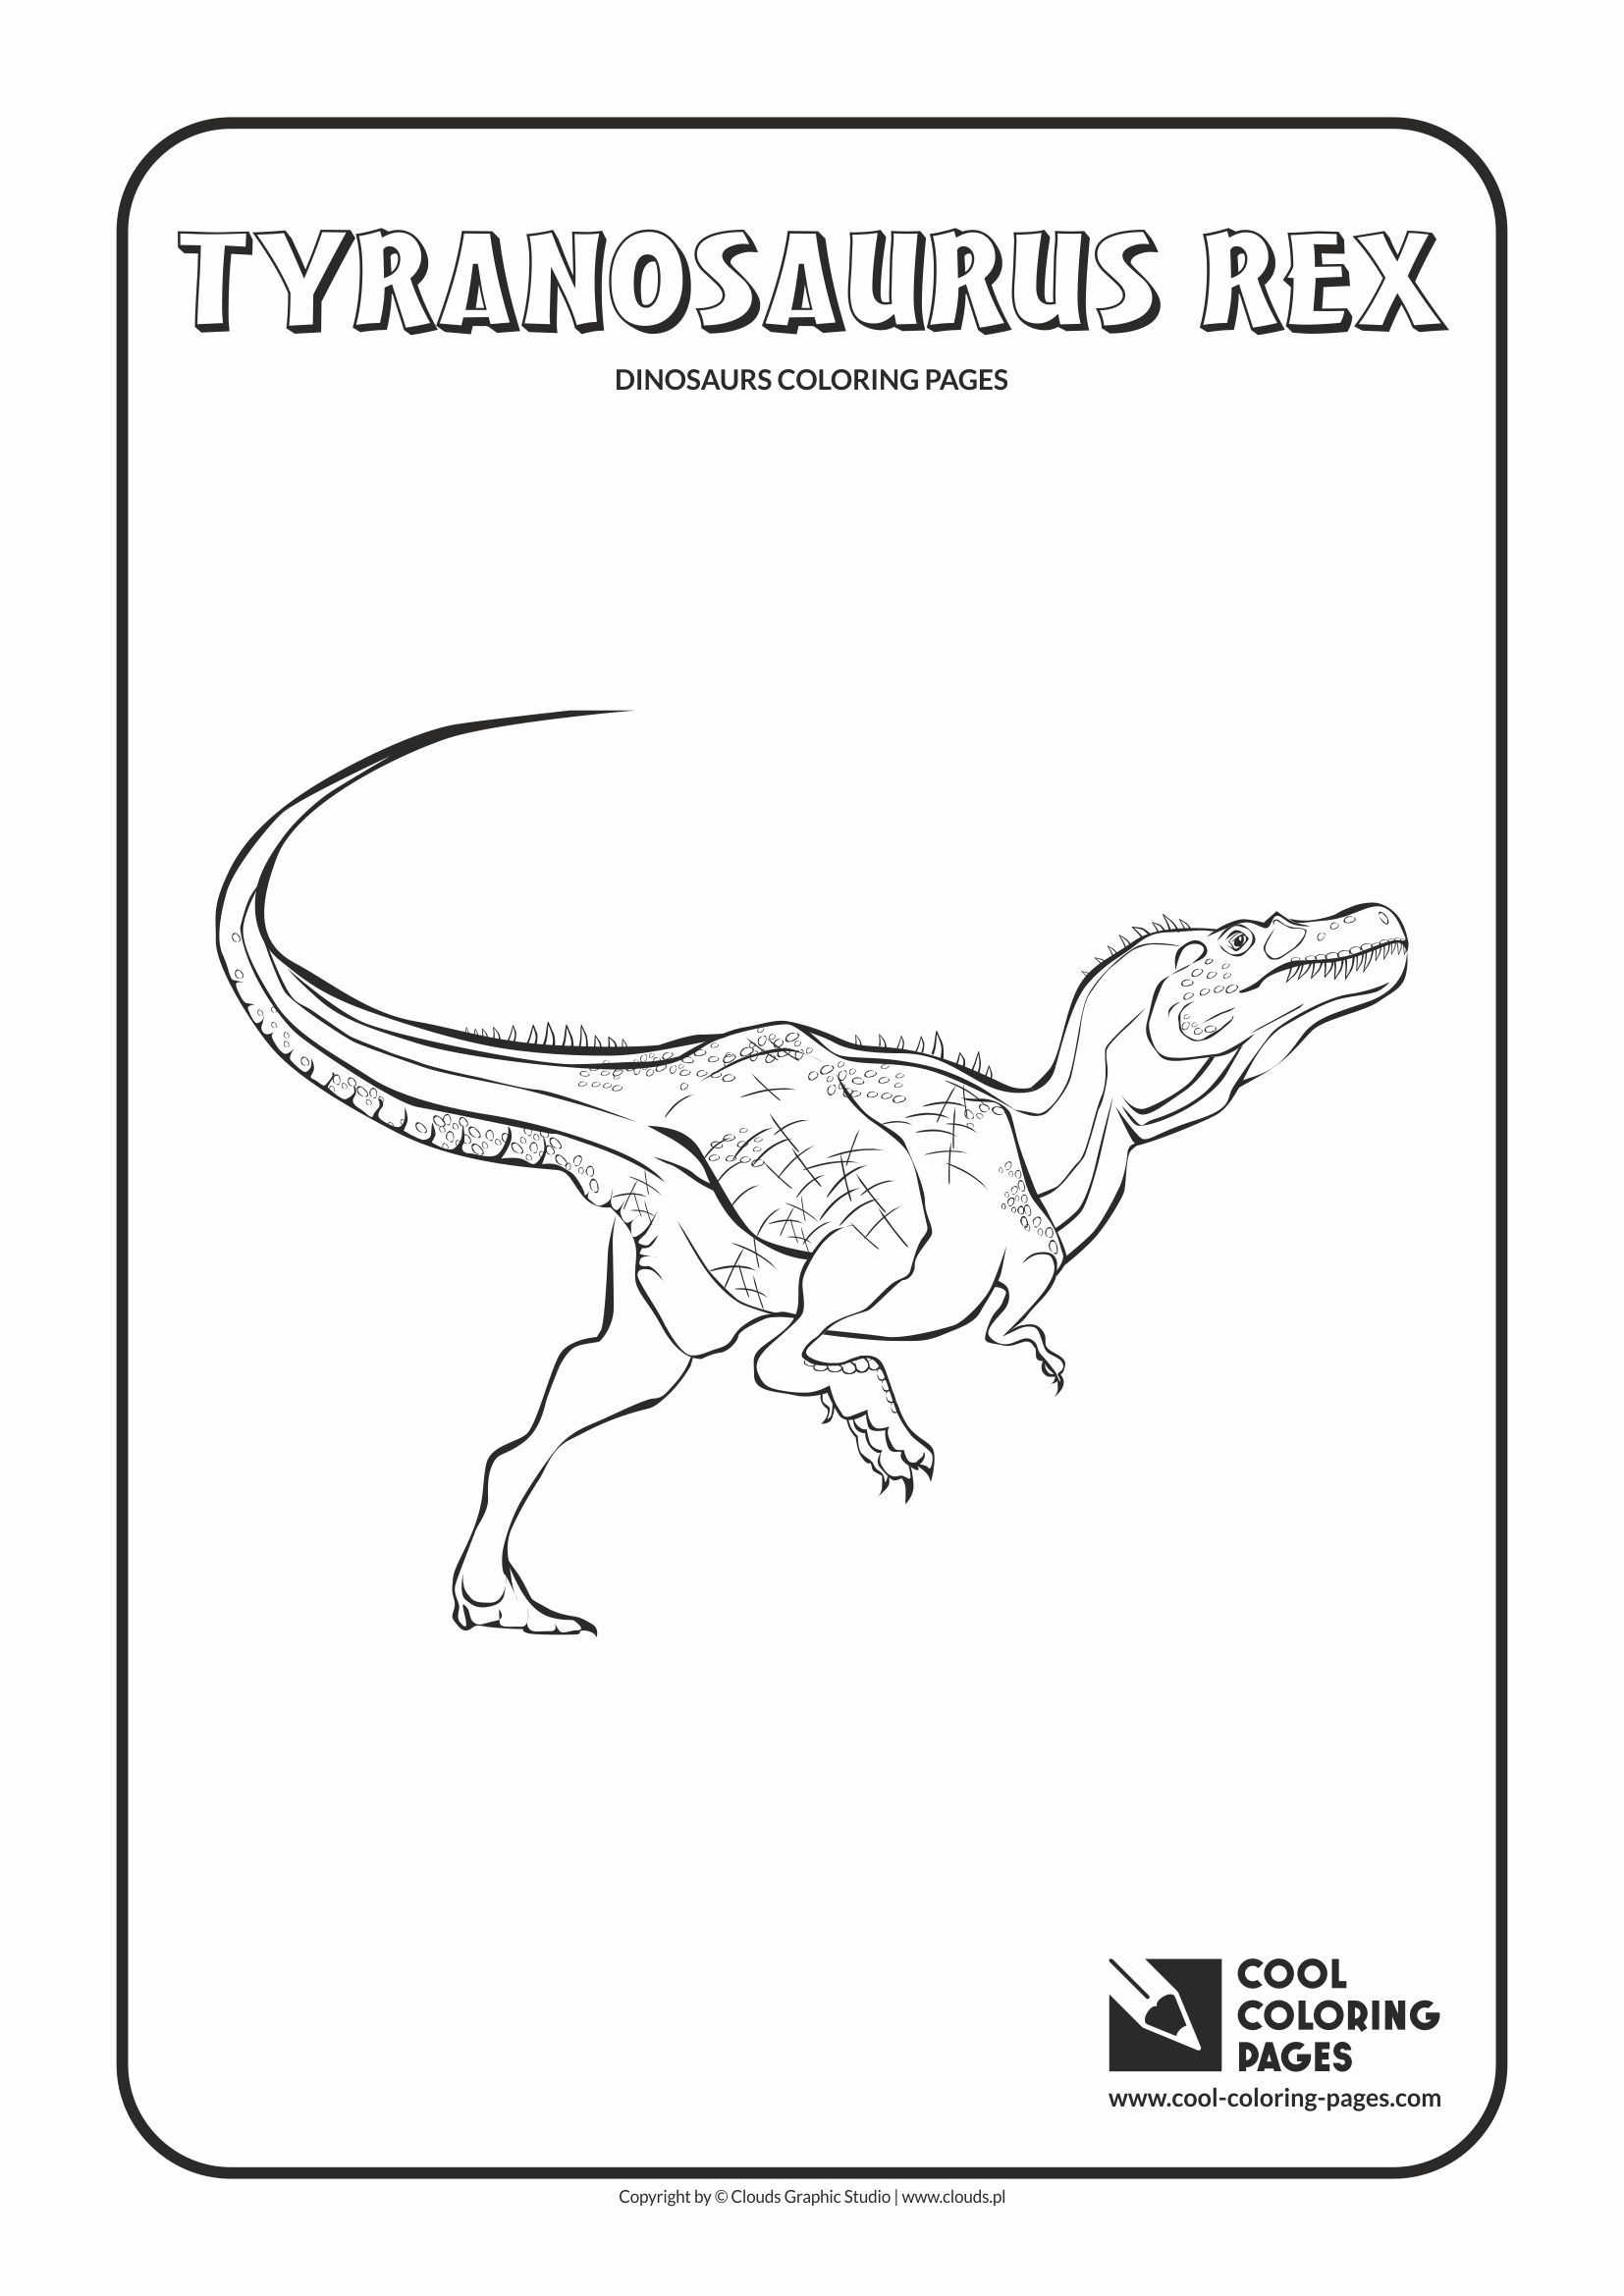 Cool Coloring Pages - Animals / Tyranosaurus rex / Coloring page with tyranosaurus rex